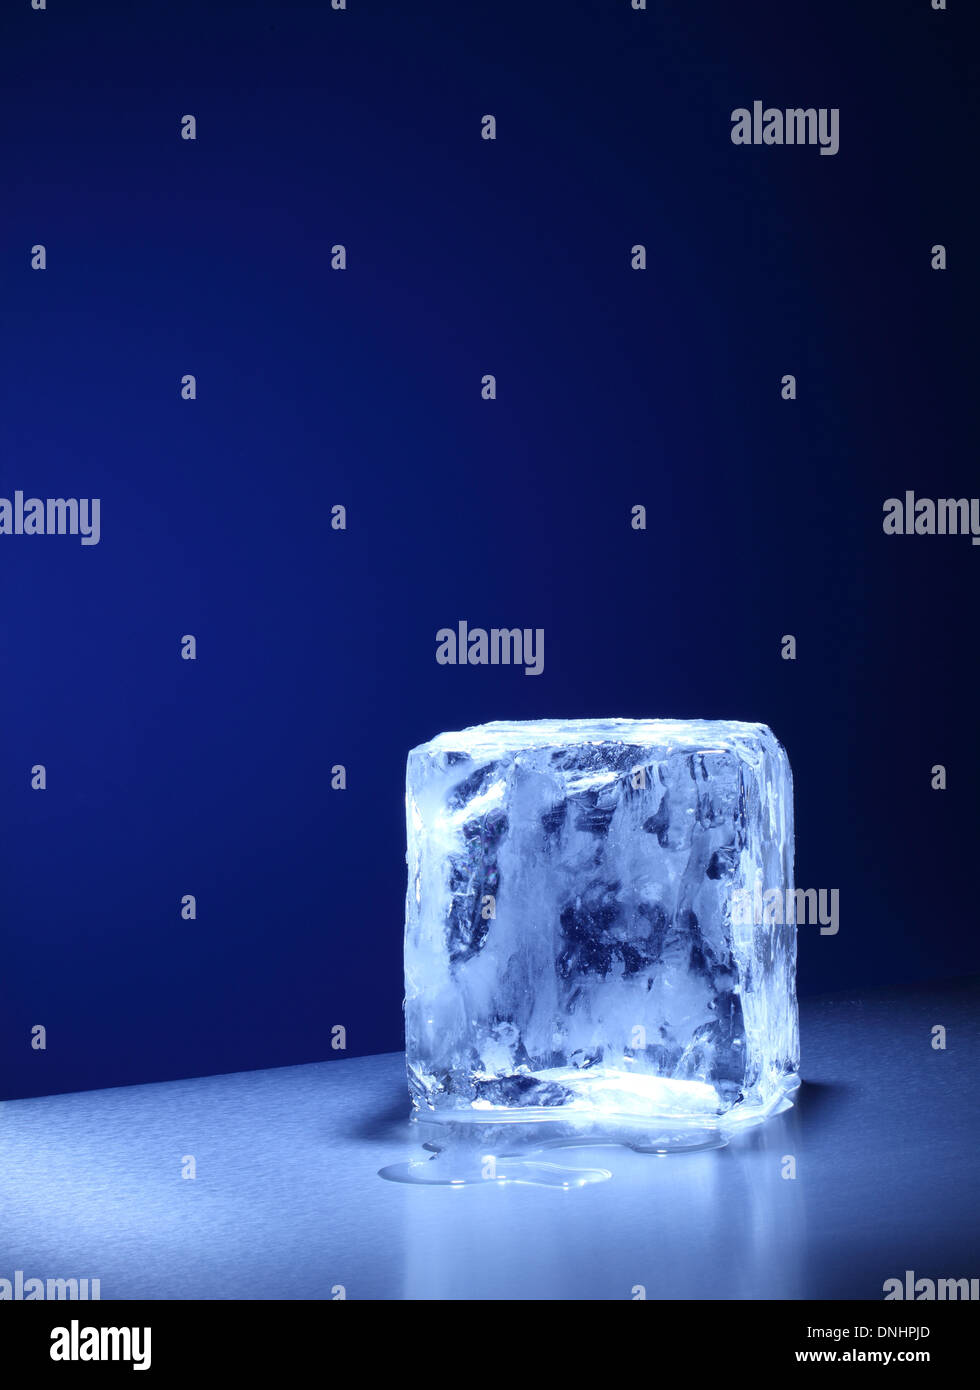 Un grand carré cube / bloc de glace fond lentement. Photo Stock